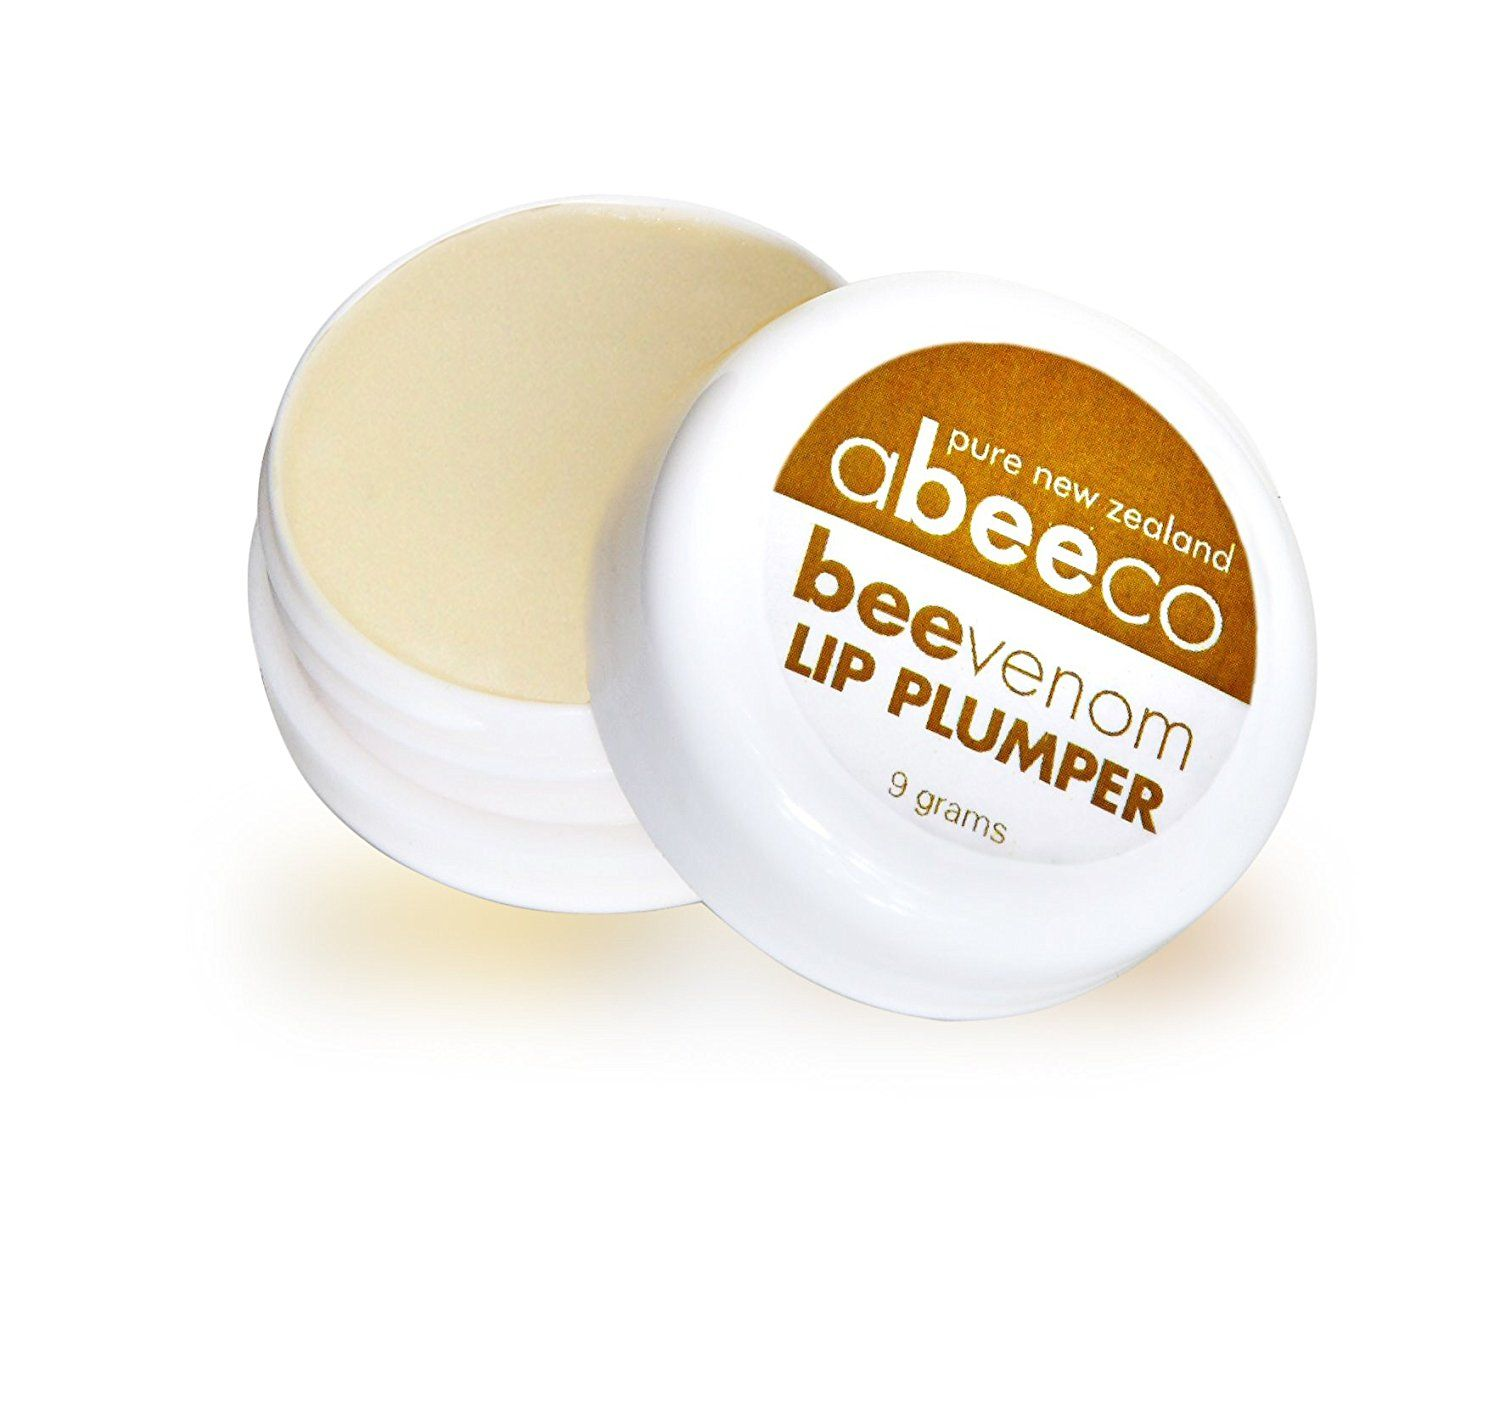 Abeeco Pure New Zealand Bee Venom Lip Plumper ** This is an